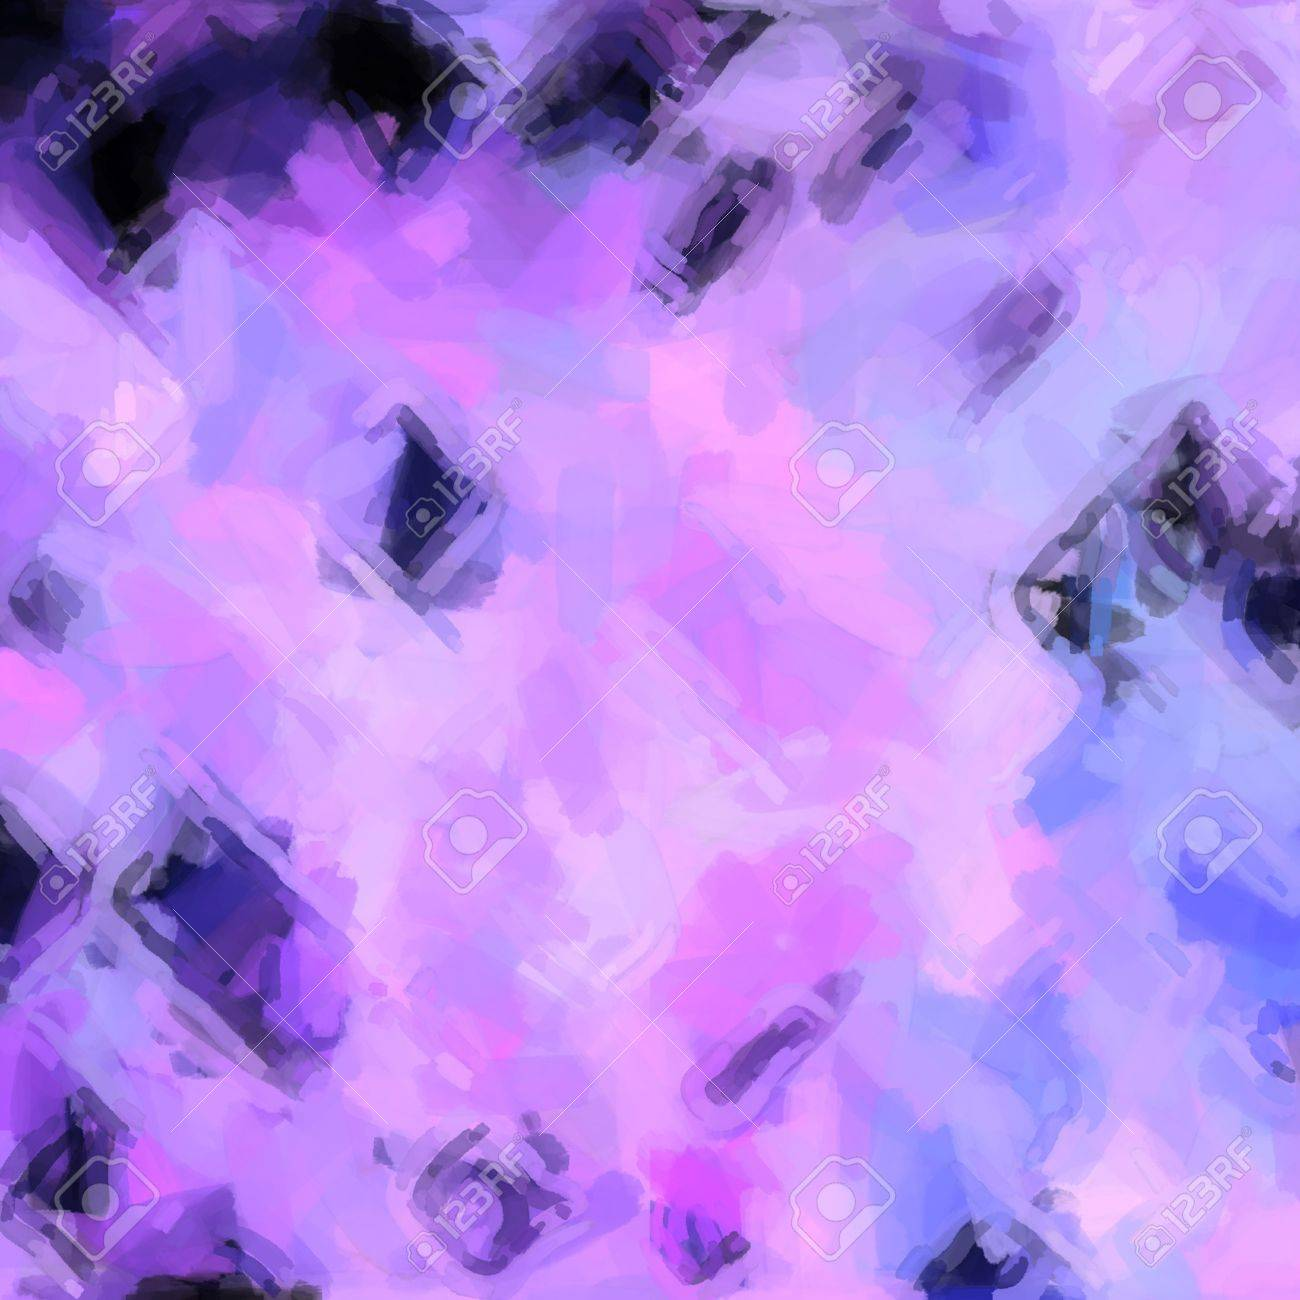 abstract color background of mixed colors like watercolor paint. Spots of light gently mixed on the square backdrop Stock Photo - 18774925